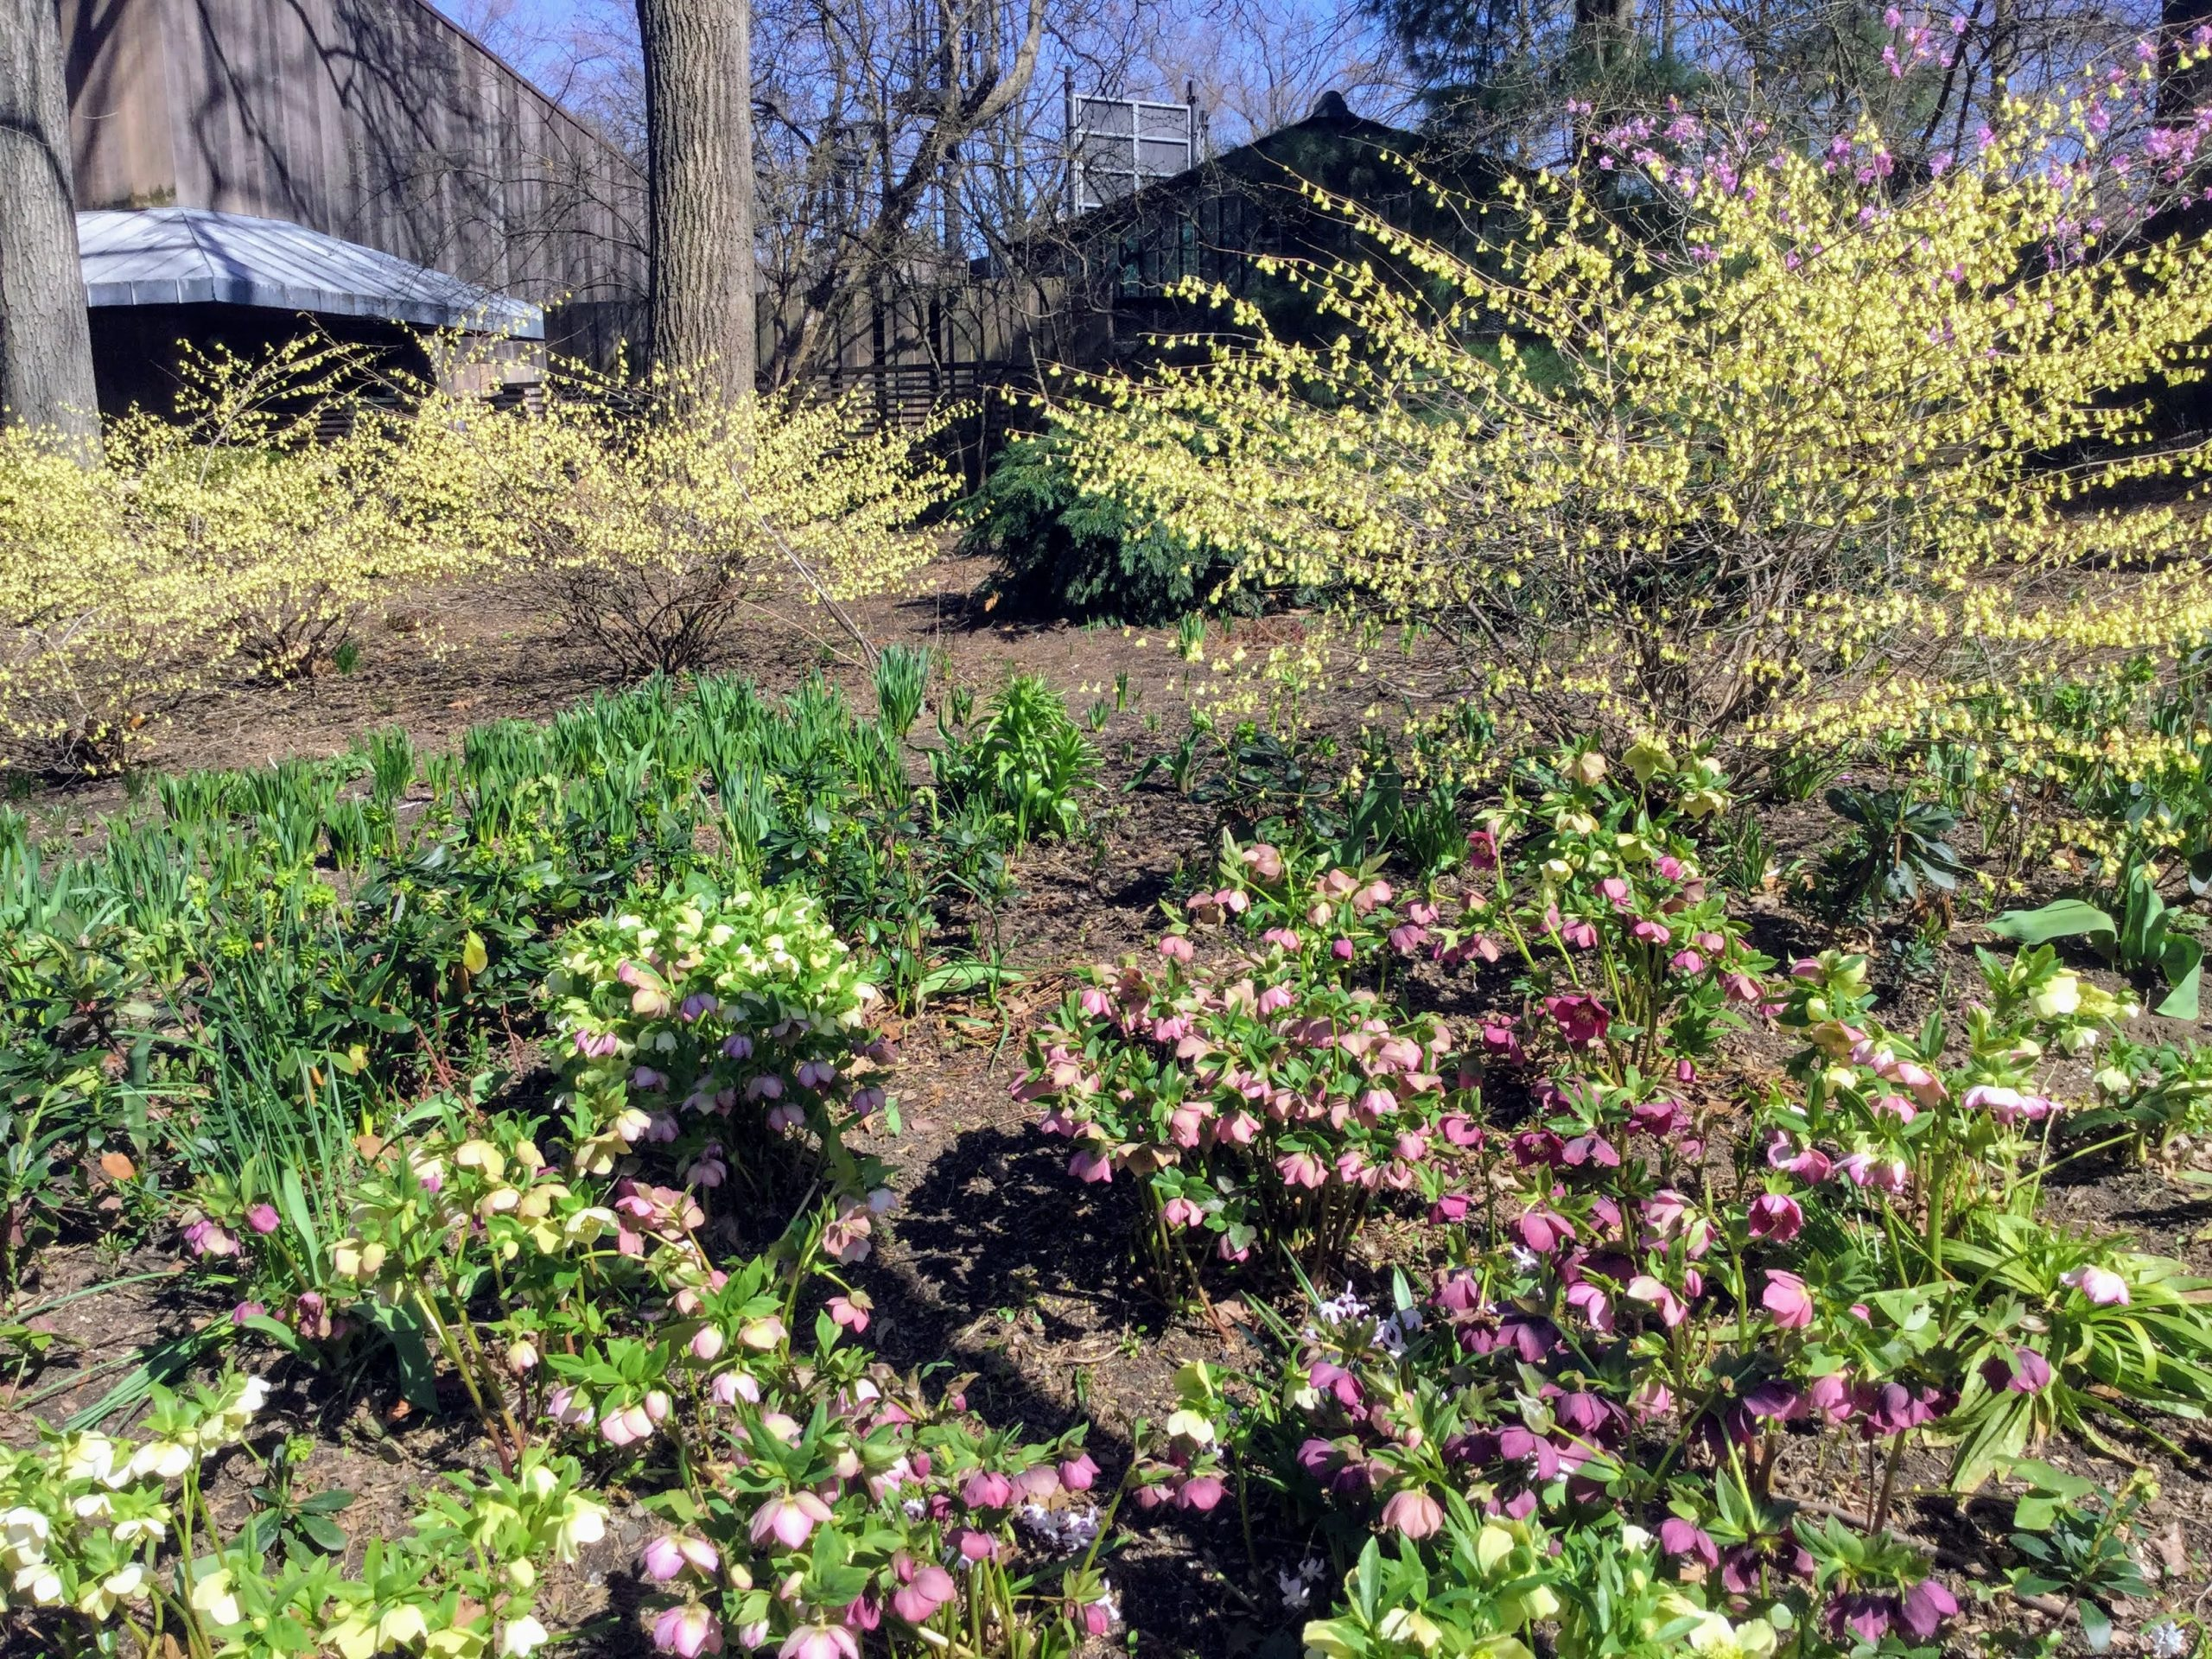 Signs of Spring in Central Park